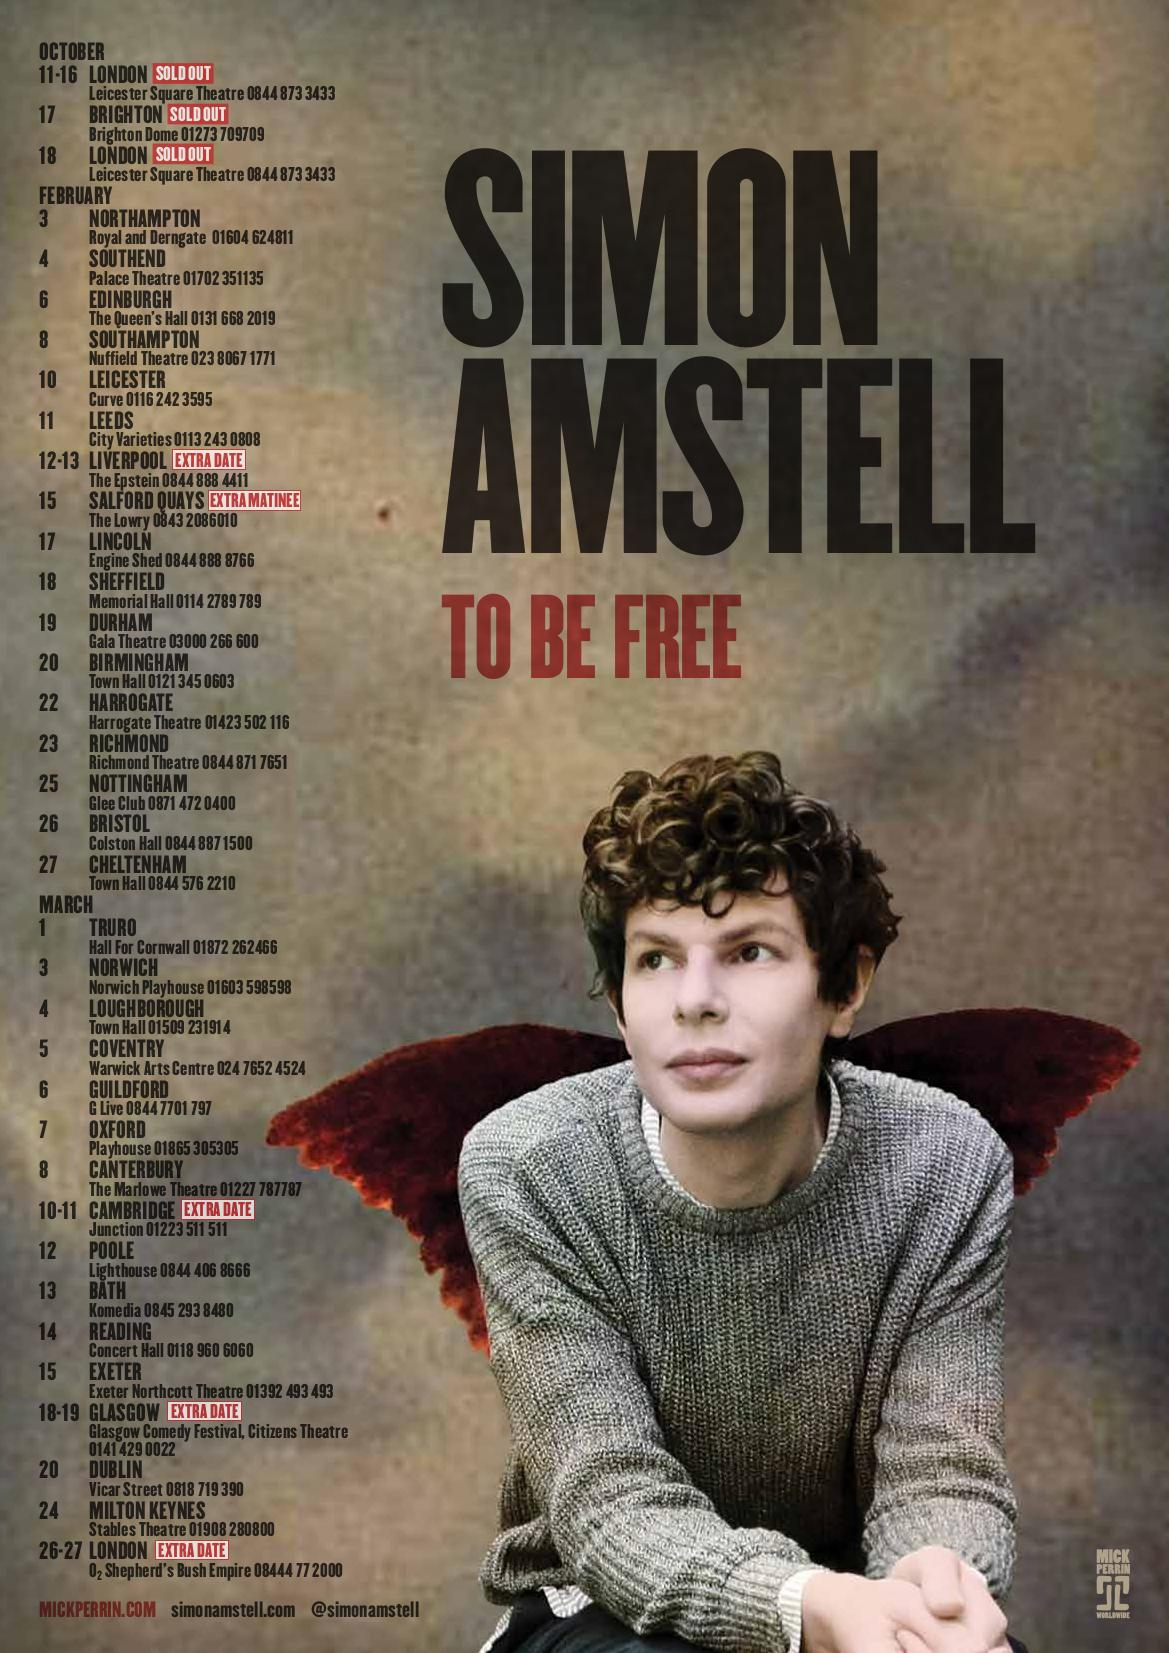 Book now to avoid disappointment: @SimonAmstell live is Absolute Comedy Gold: http://t.co/q86CvAsHXO